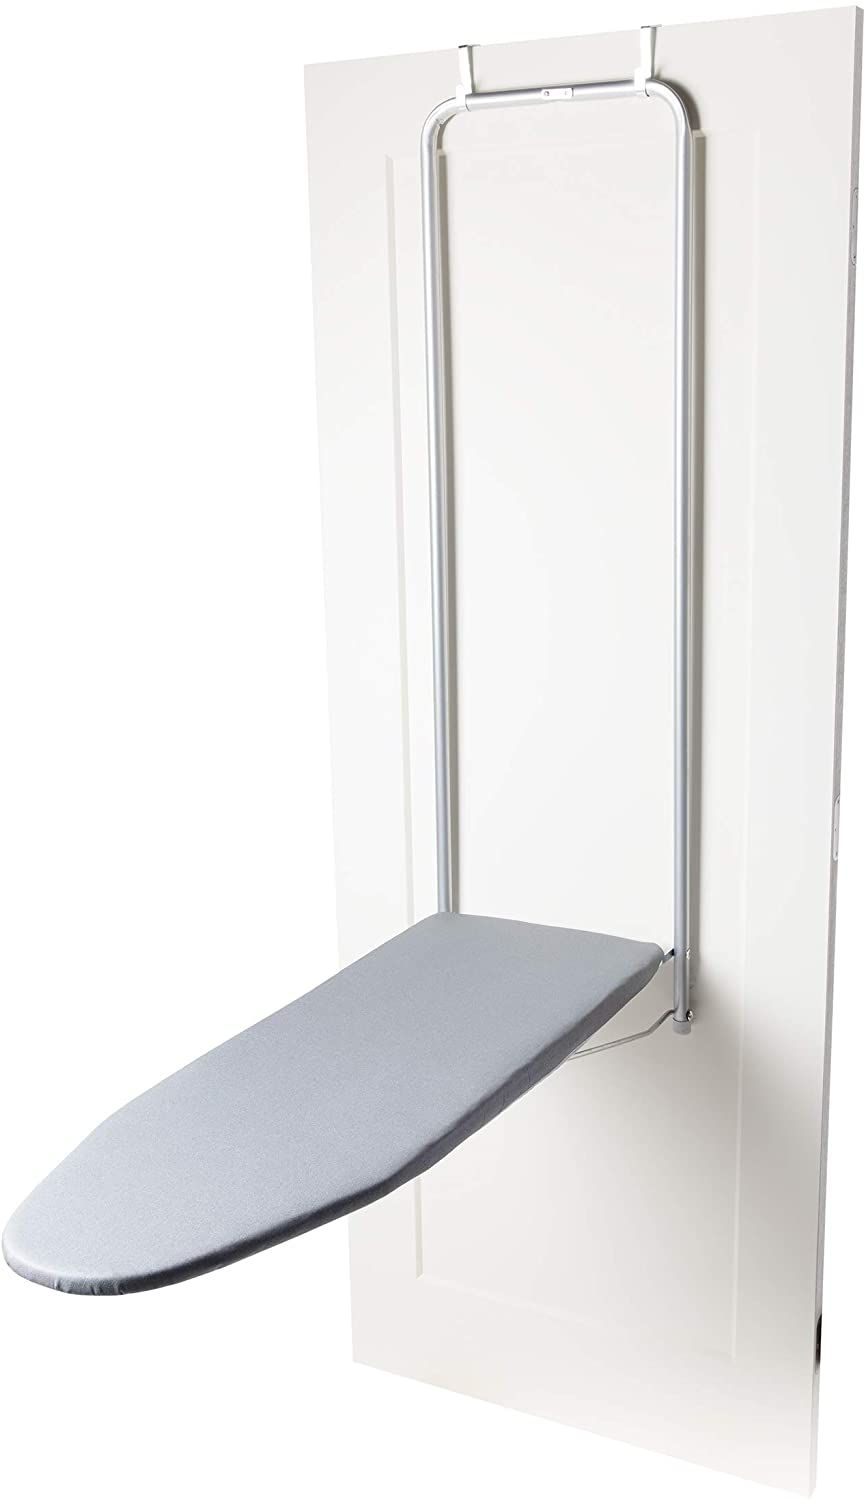 Tivit Over The Door Ironing Board Easton 12 5 X 44 Hanging Easy Instal Iron Boards Metal Mesh To In 2020 Metal Mesh Door Ironing Board Iron Board